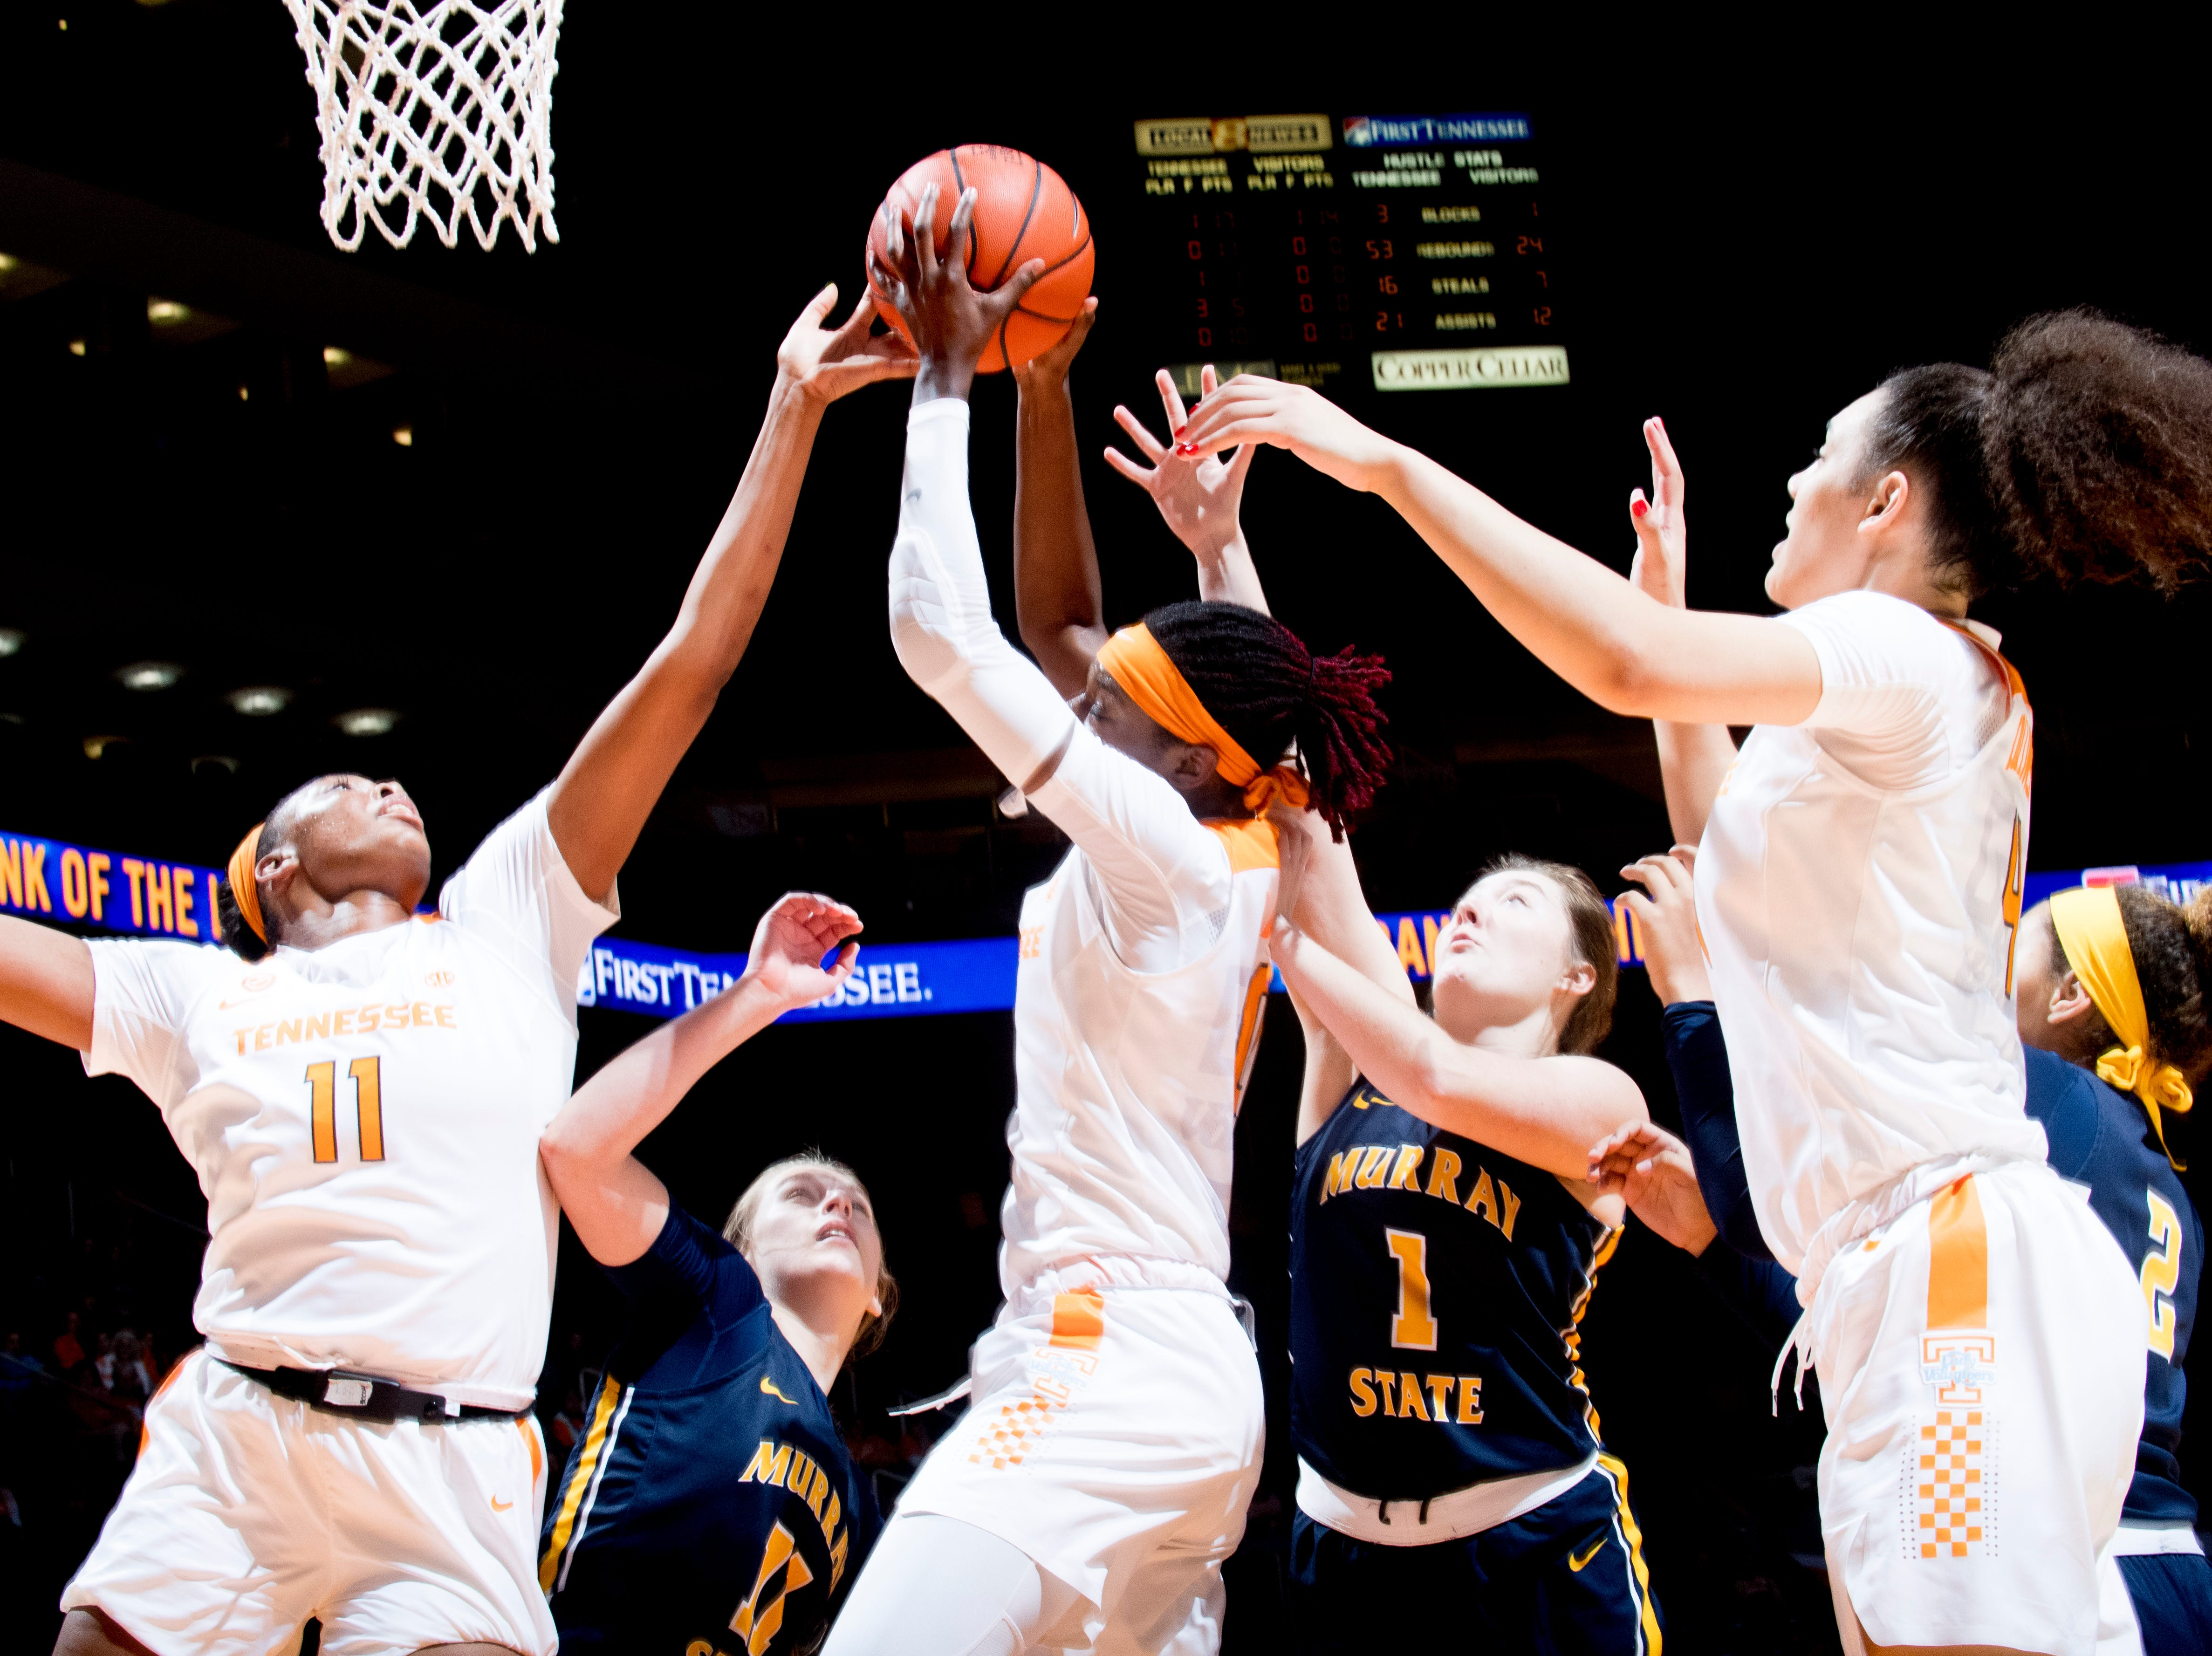 Tennessee guard/forward Rennia Davis (0) grabs the ball during a game between the Tennessee Lady Vols and Murray State at Thompson-Boling Arena in Knoxville, Tennessee on Friday, December 28, 2018.